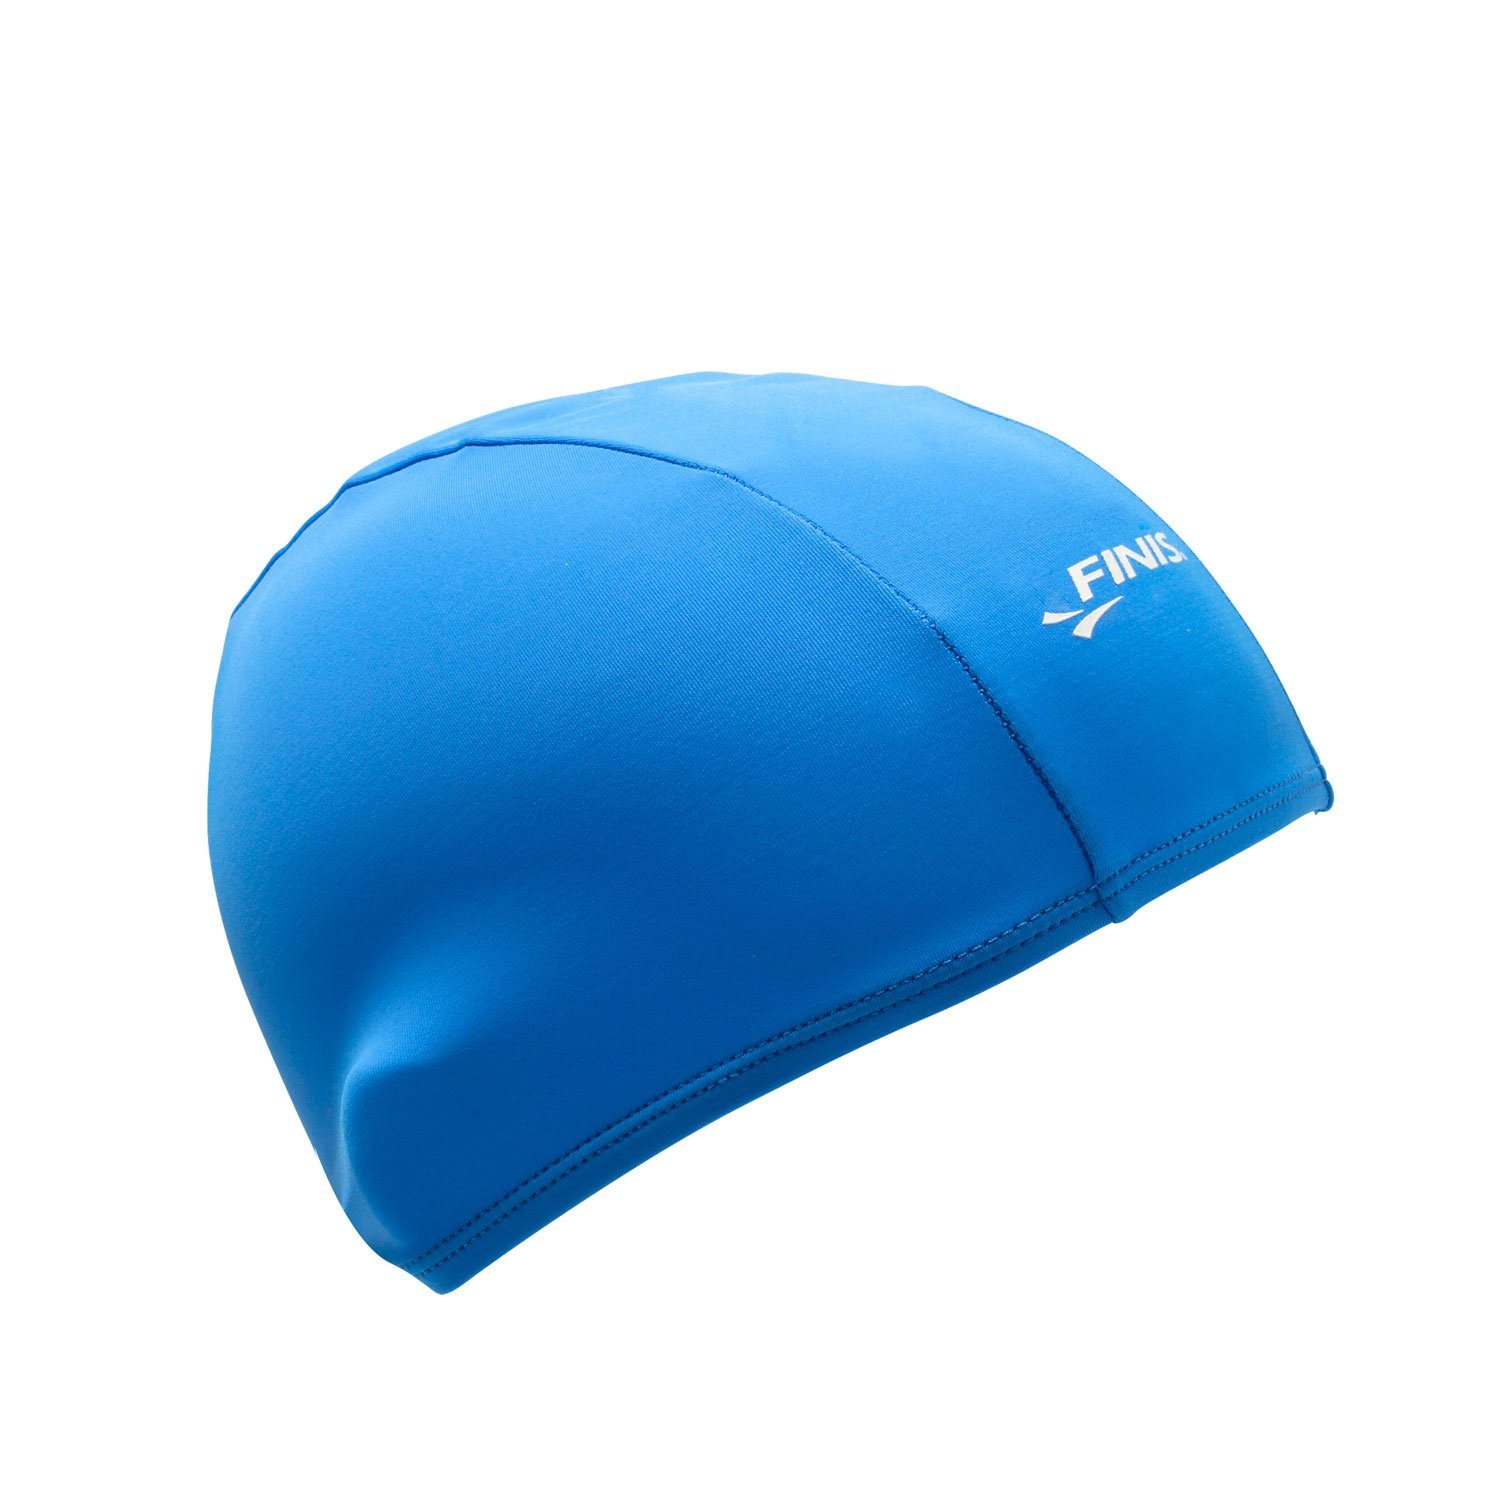 099303248cd Best Rated in Swimming Caps   Helpful Customer Reviews - Amazon.com